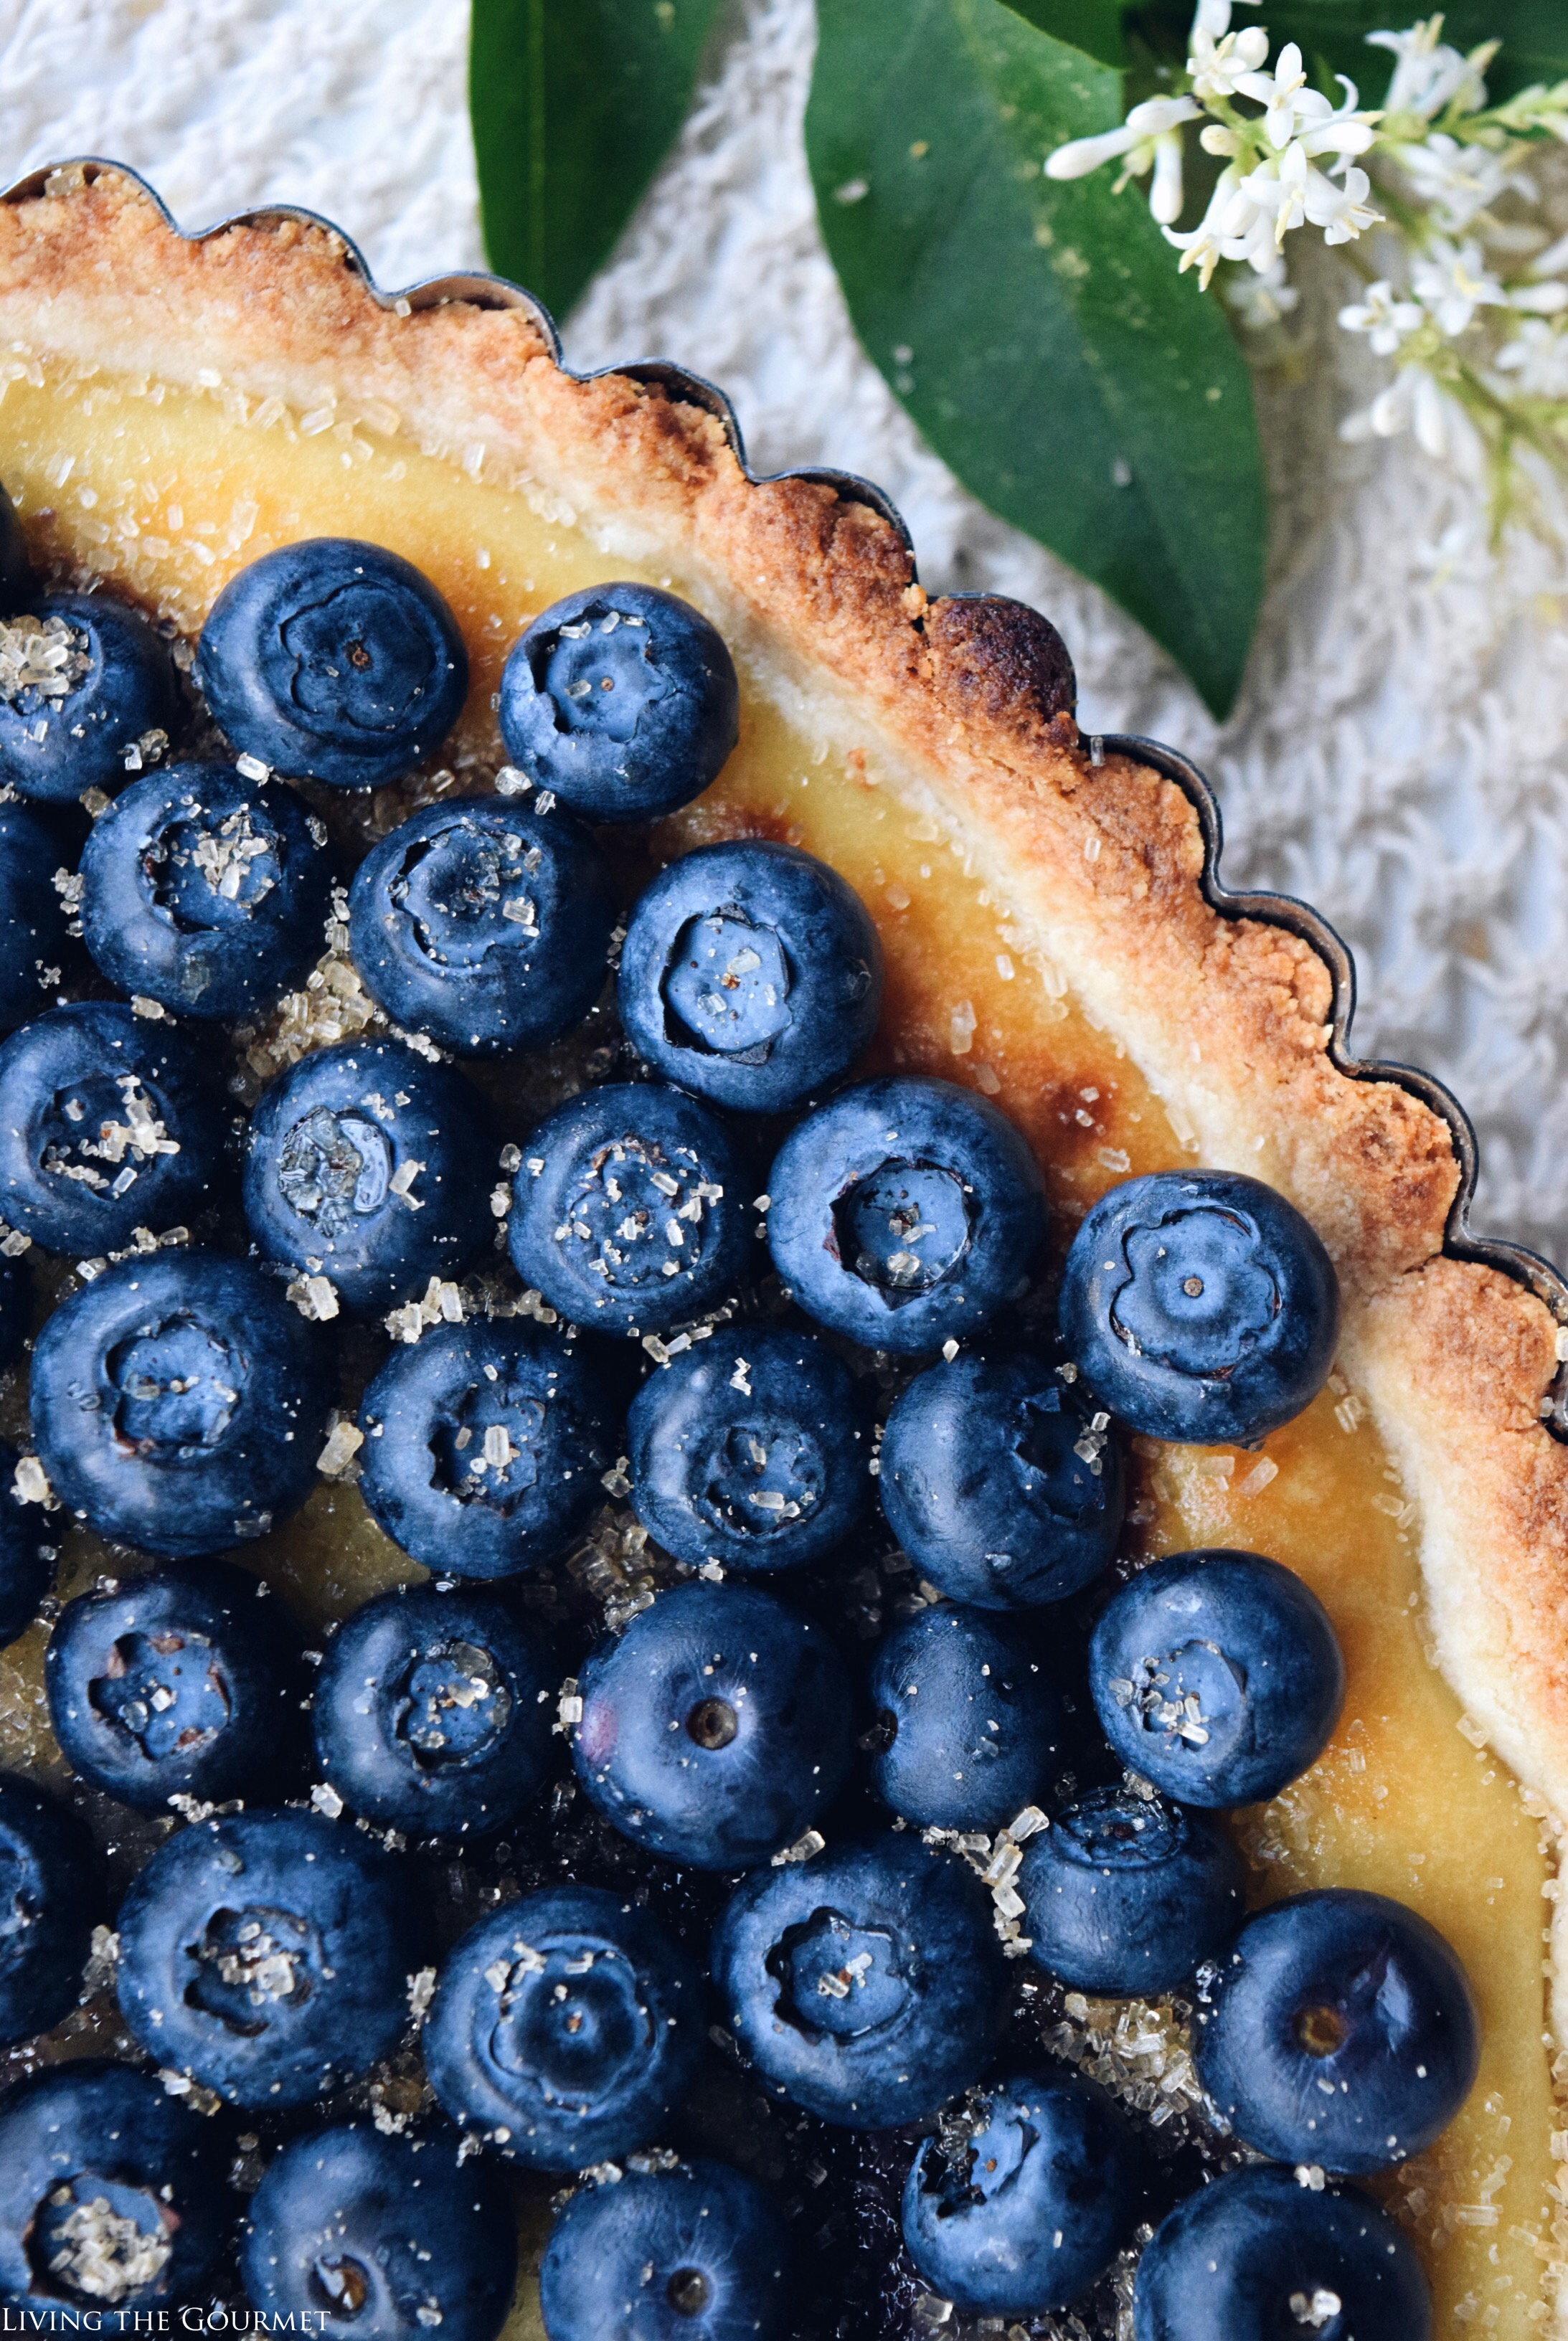 Living the Gourmet: Whipped Ricotta & Blueberry Tart